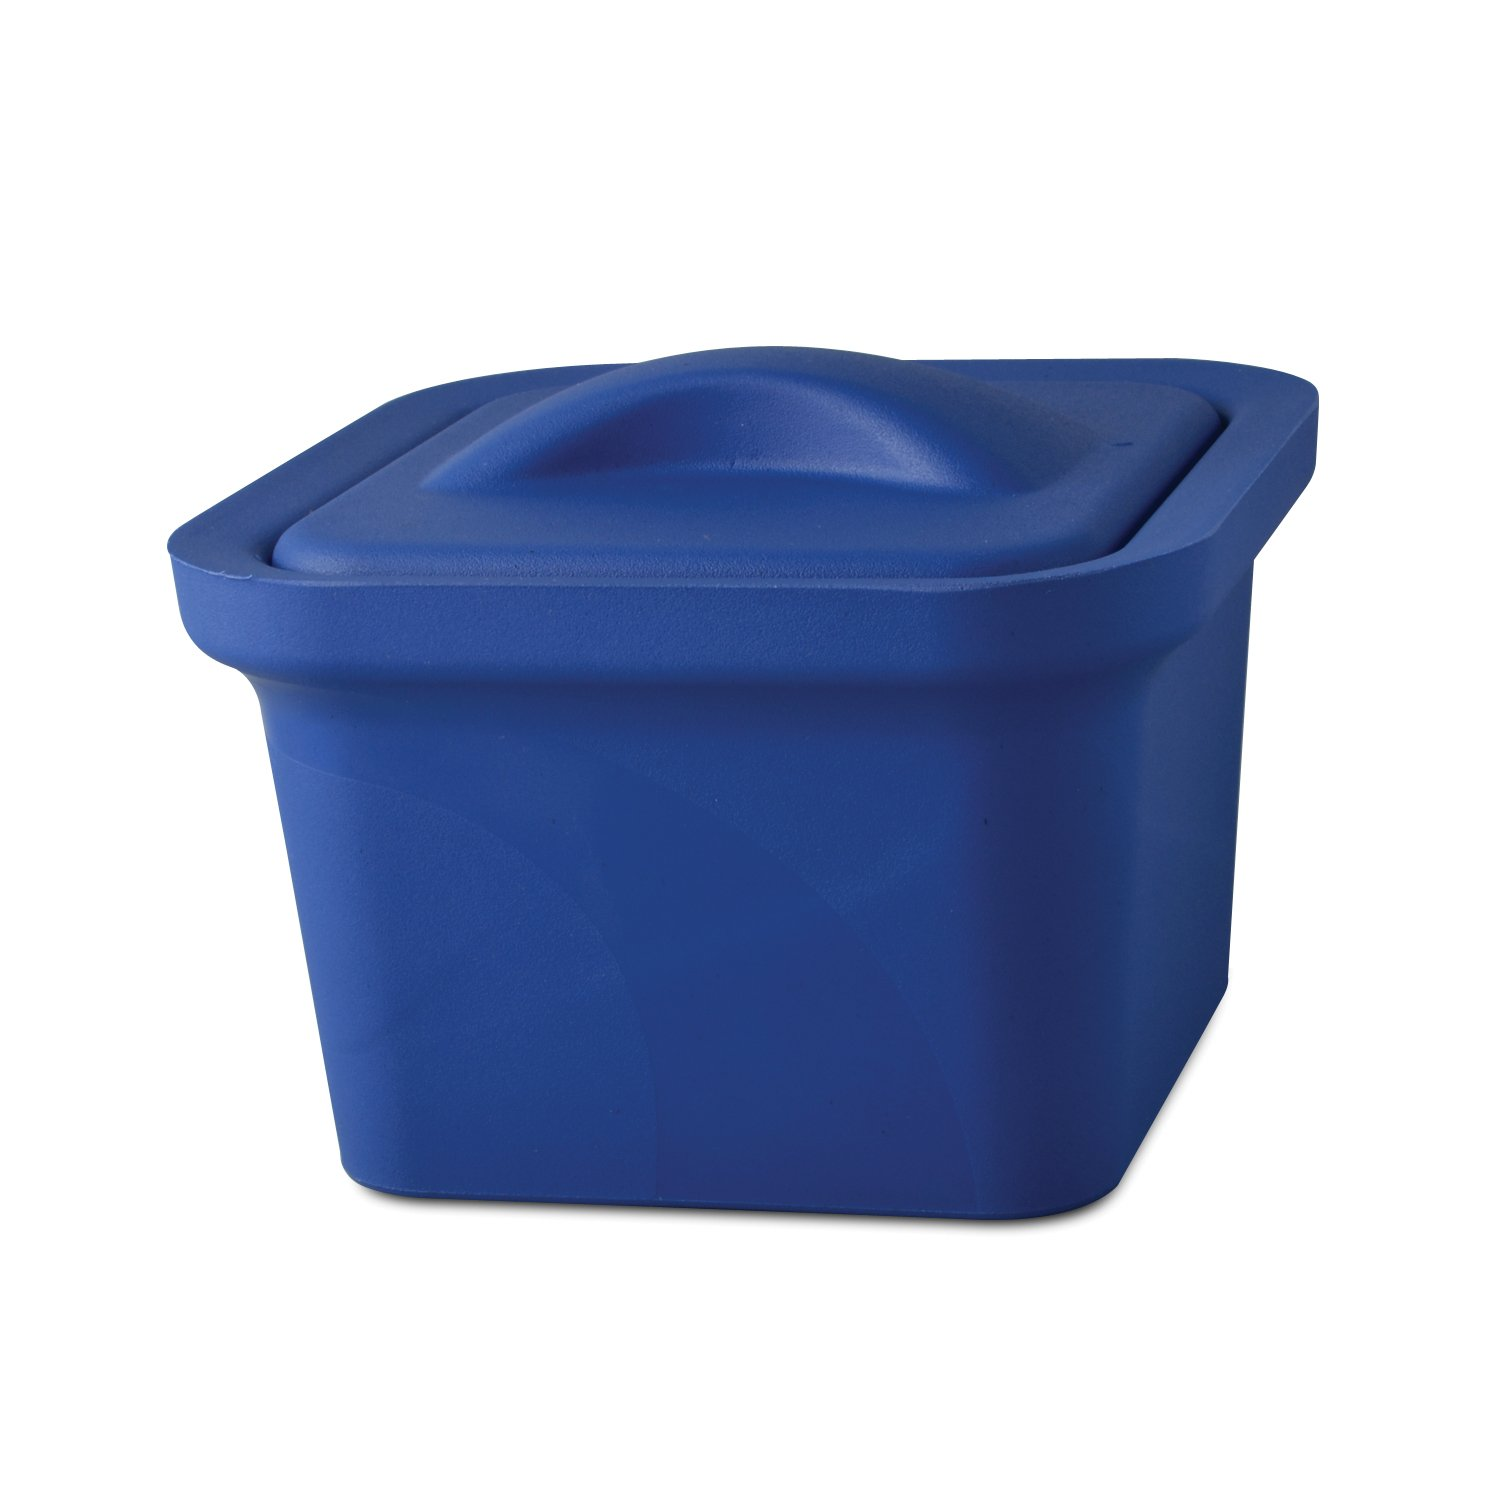 Bel-Art Magic Touch 2 High Performance Blue Ice Pan; 1.0 Liter Mini Model, with Lid (M16807-1101)